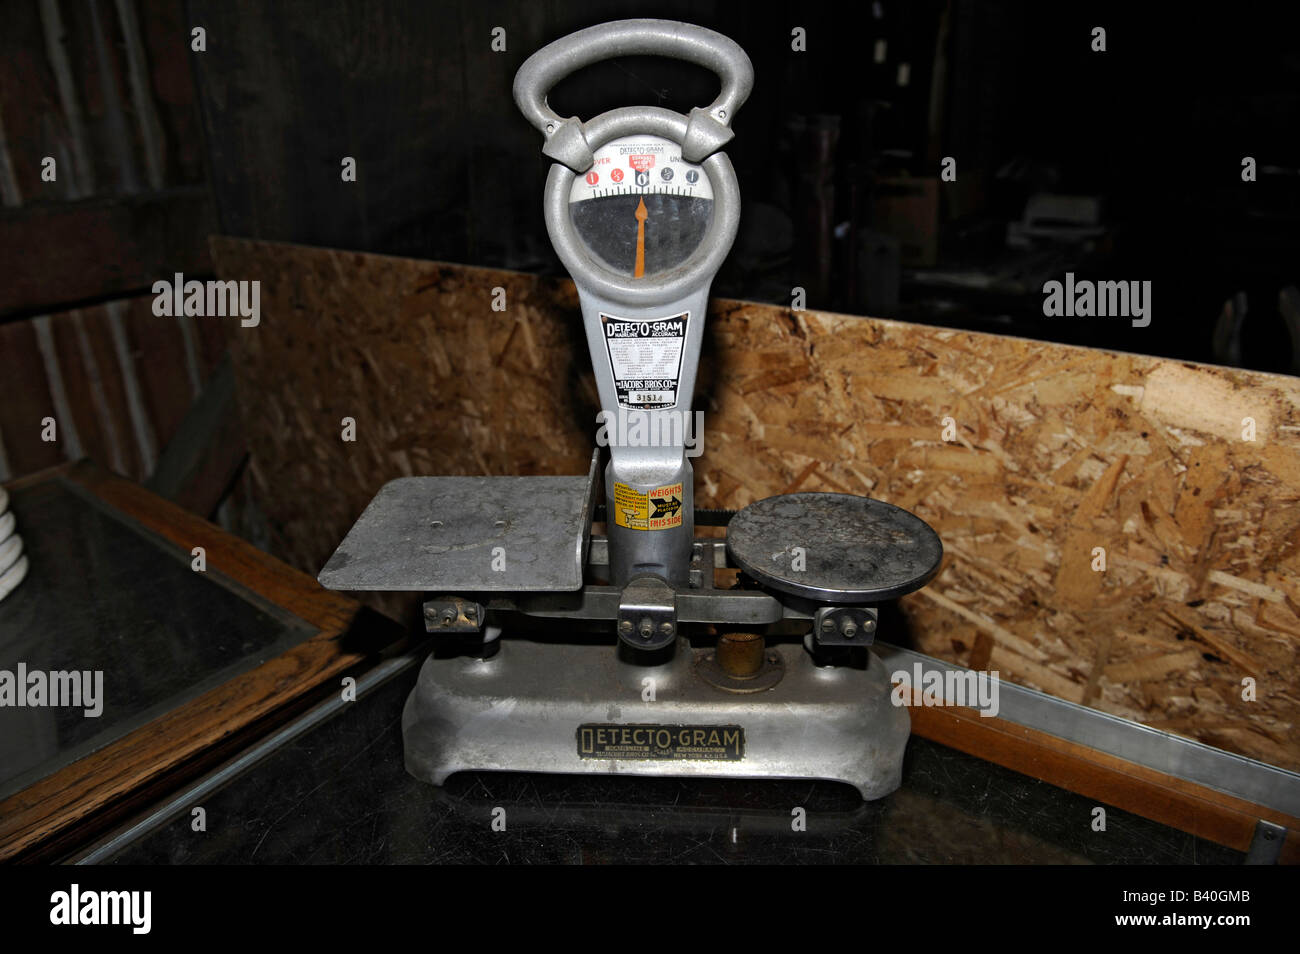 Old vintage circa 1930 weight scale - Stock Image